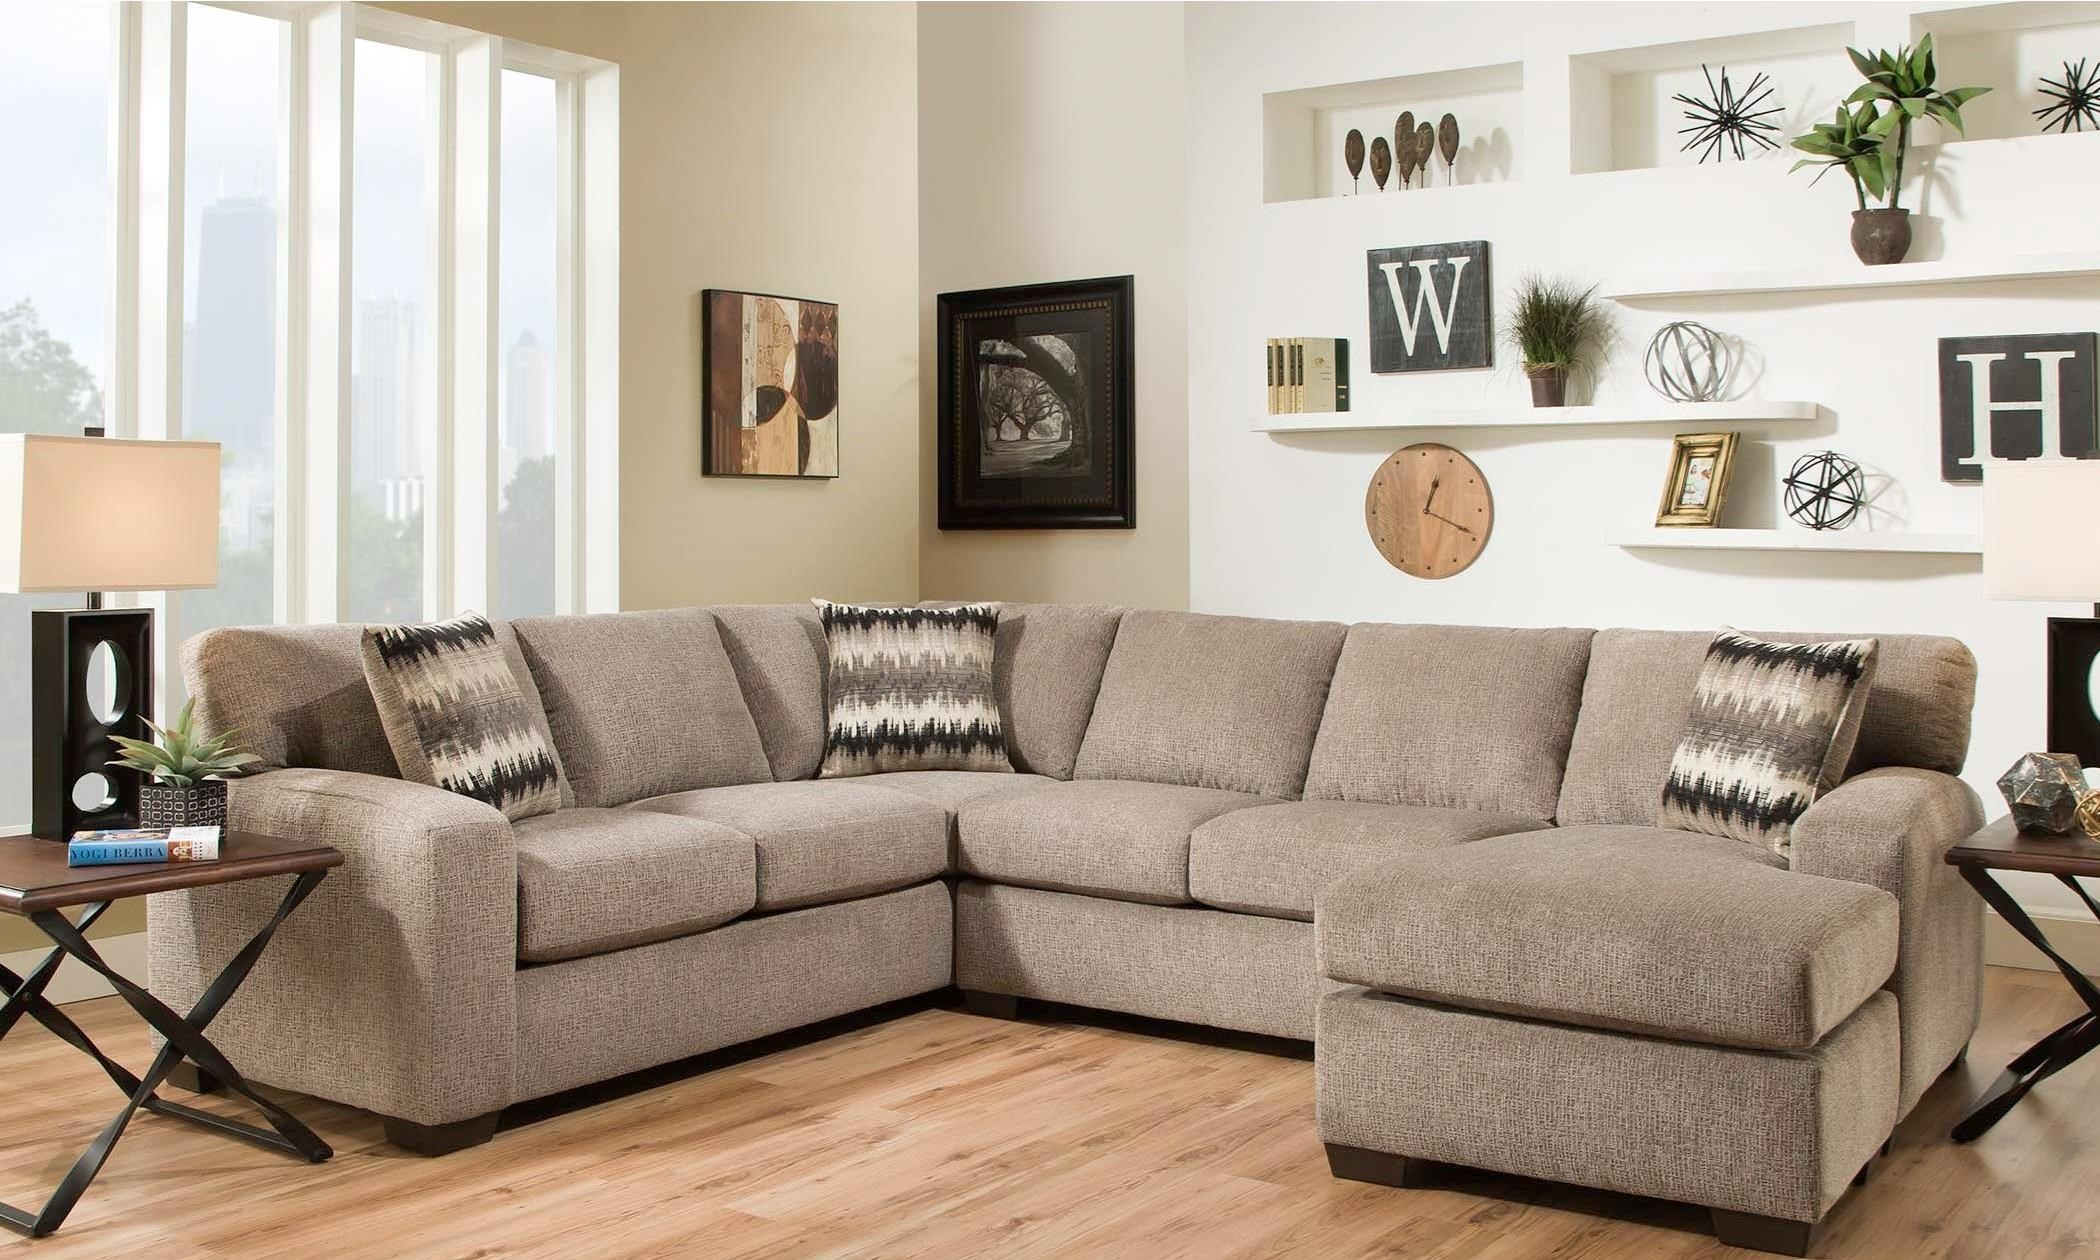 American Furniture 5250 Sectional Sofa - Seats 5 : sectional sofa stores - Sectionals, Sofas & Couches